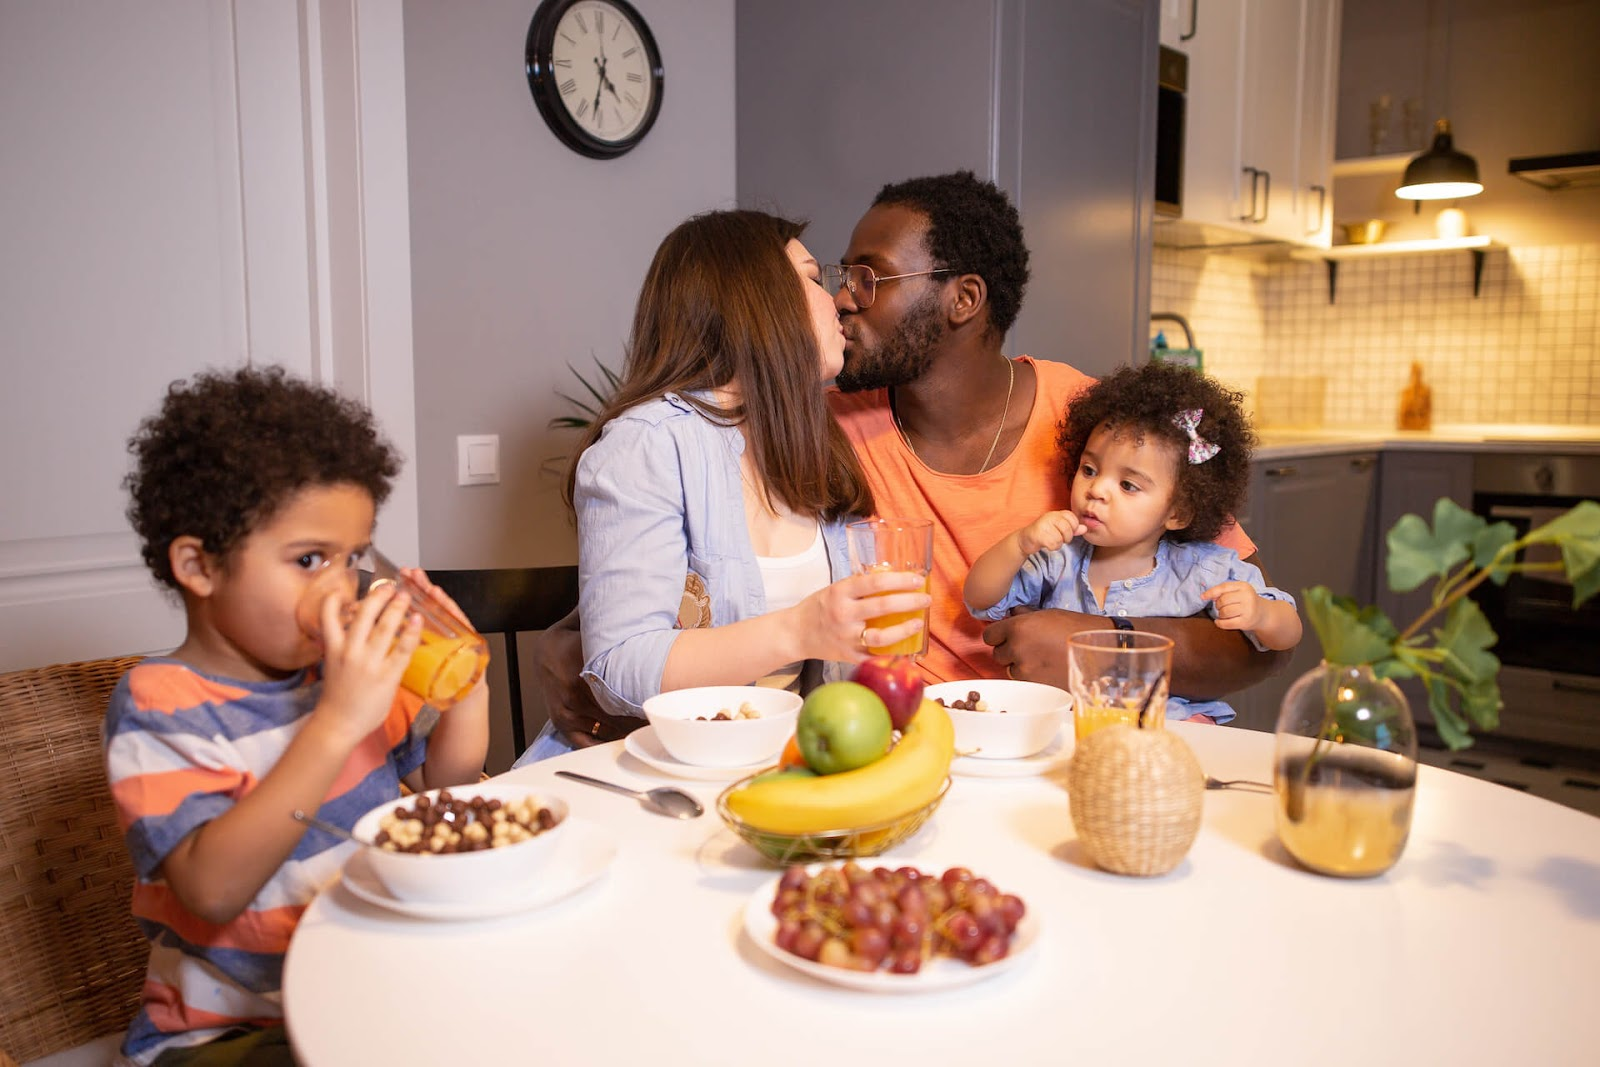 Man and woman kissing at the breakfast table with their children